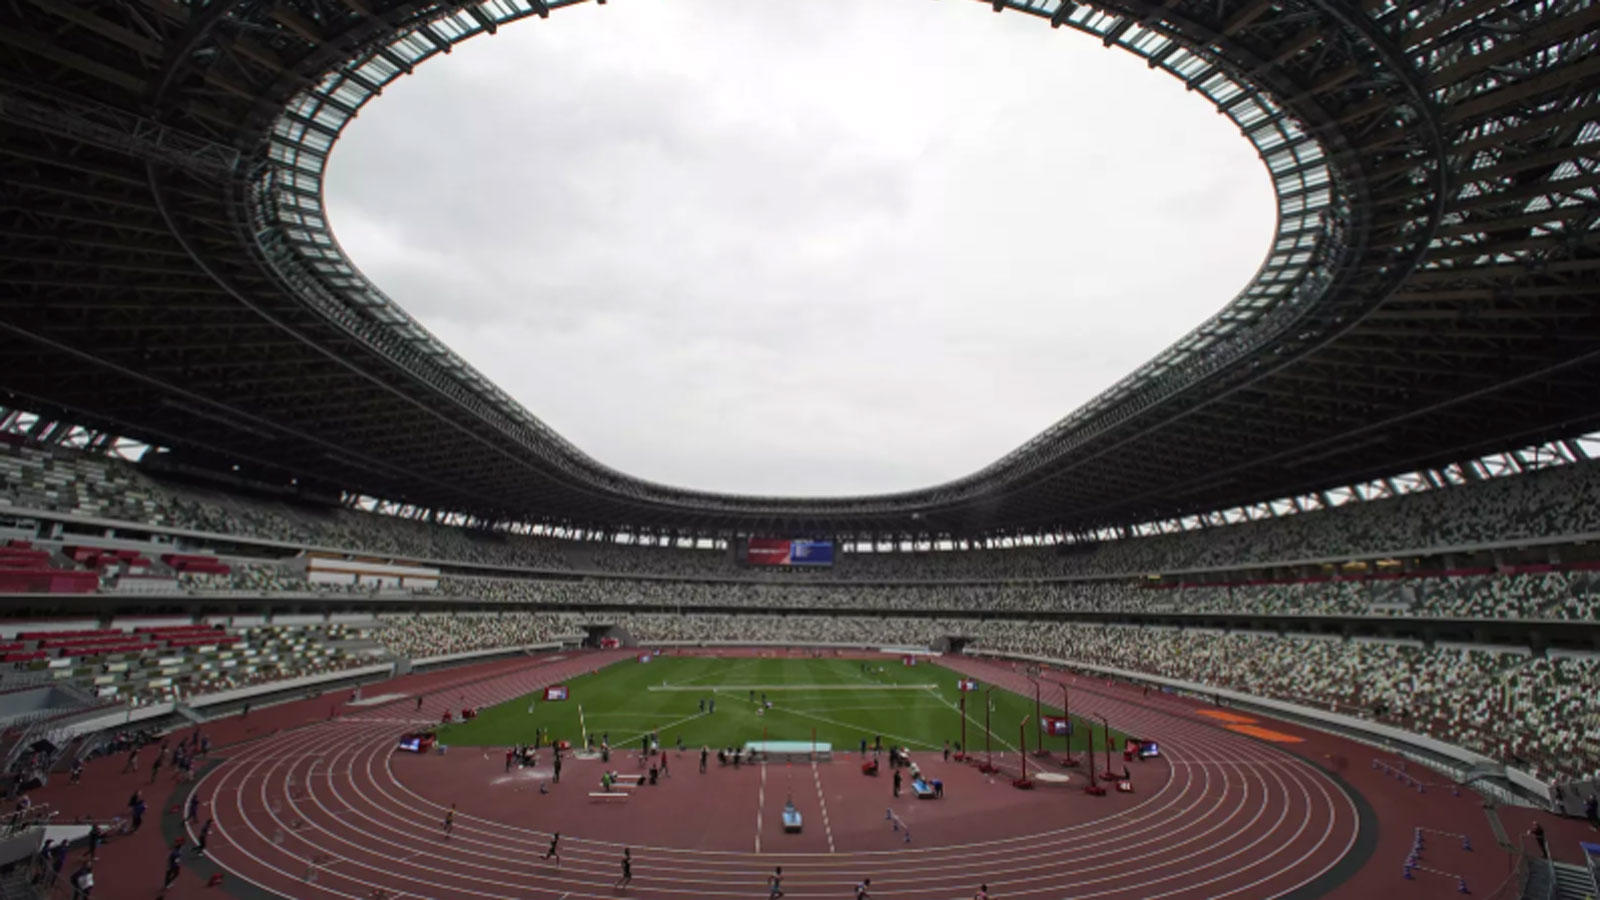 covid-19-us-track-and-field-team-cancels-olympic-training-camp-in-japan